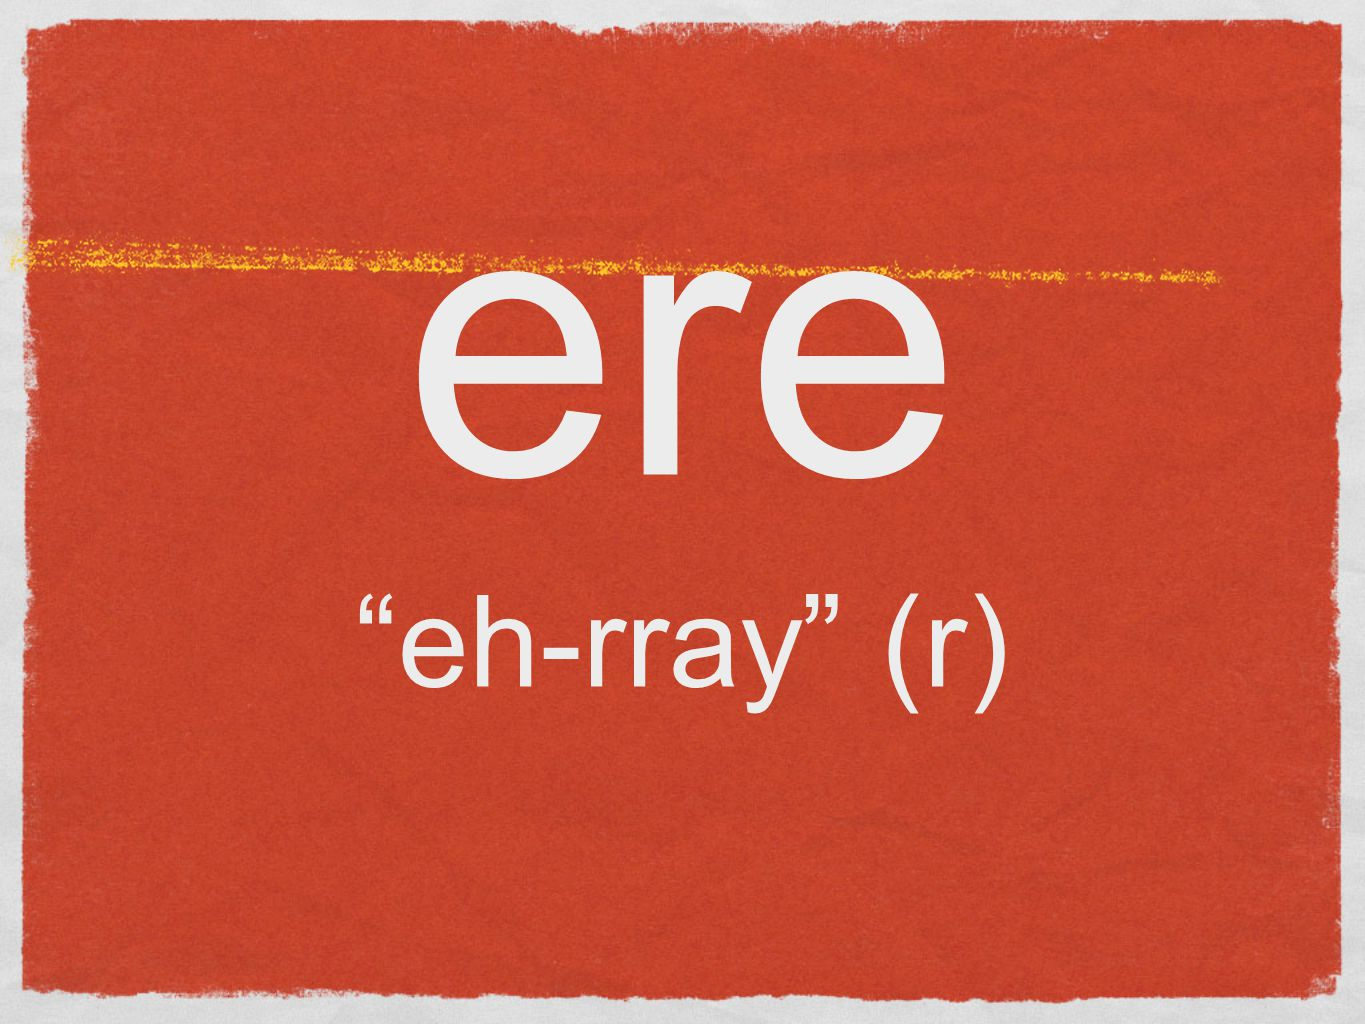 ere eh-rray (r)